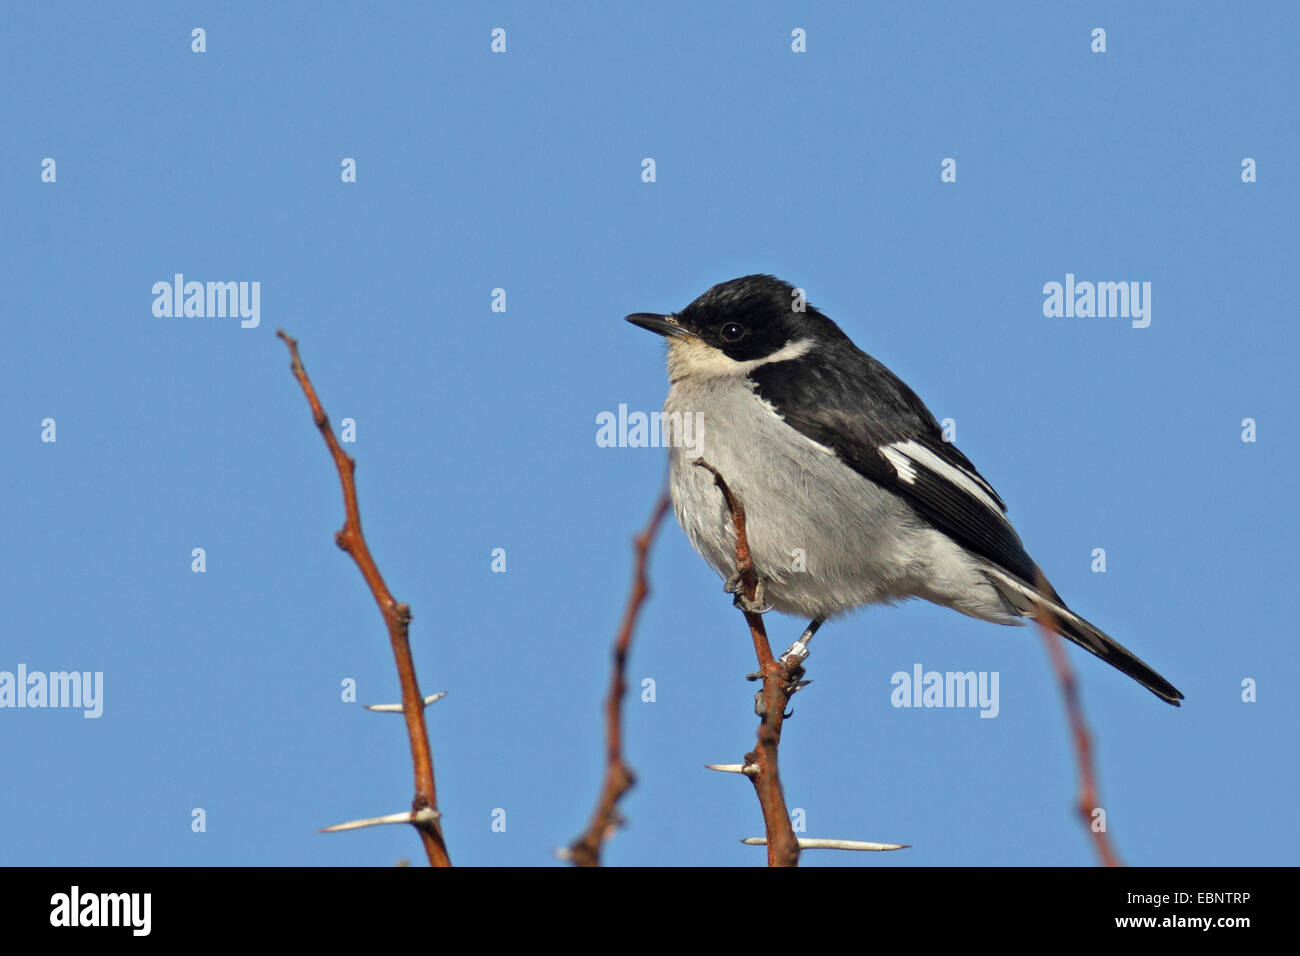 fiscal flycatcher (Melaenornis silens), sitting on a bush, South Africa, Barberspan Bird Sanctury - Stock Image